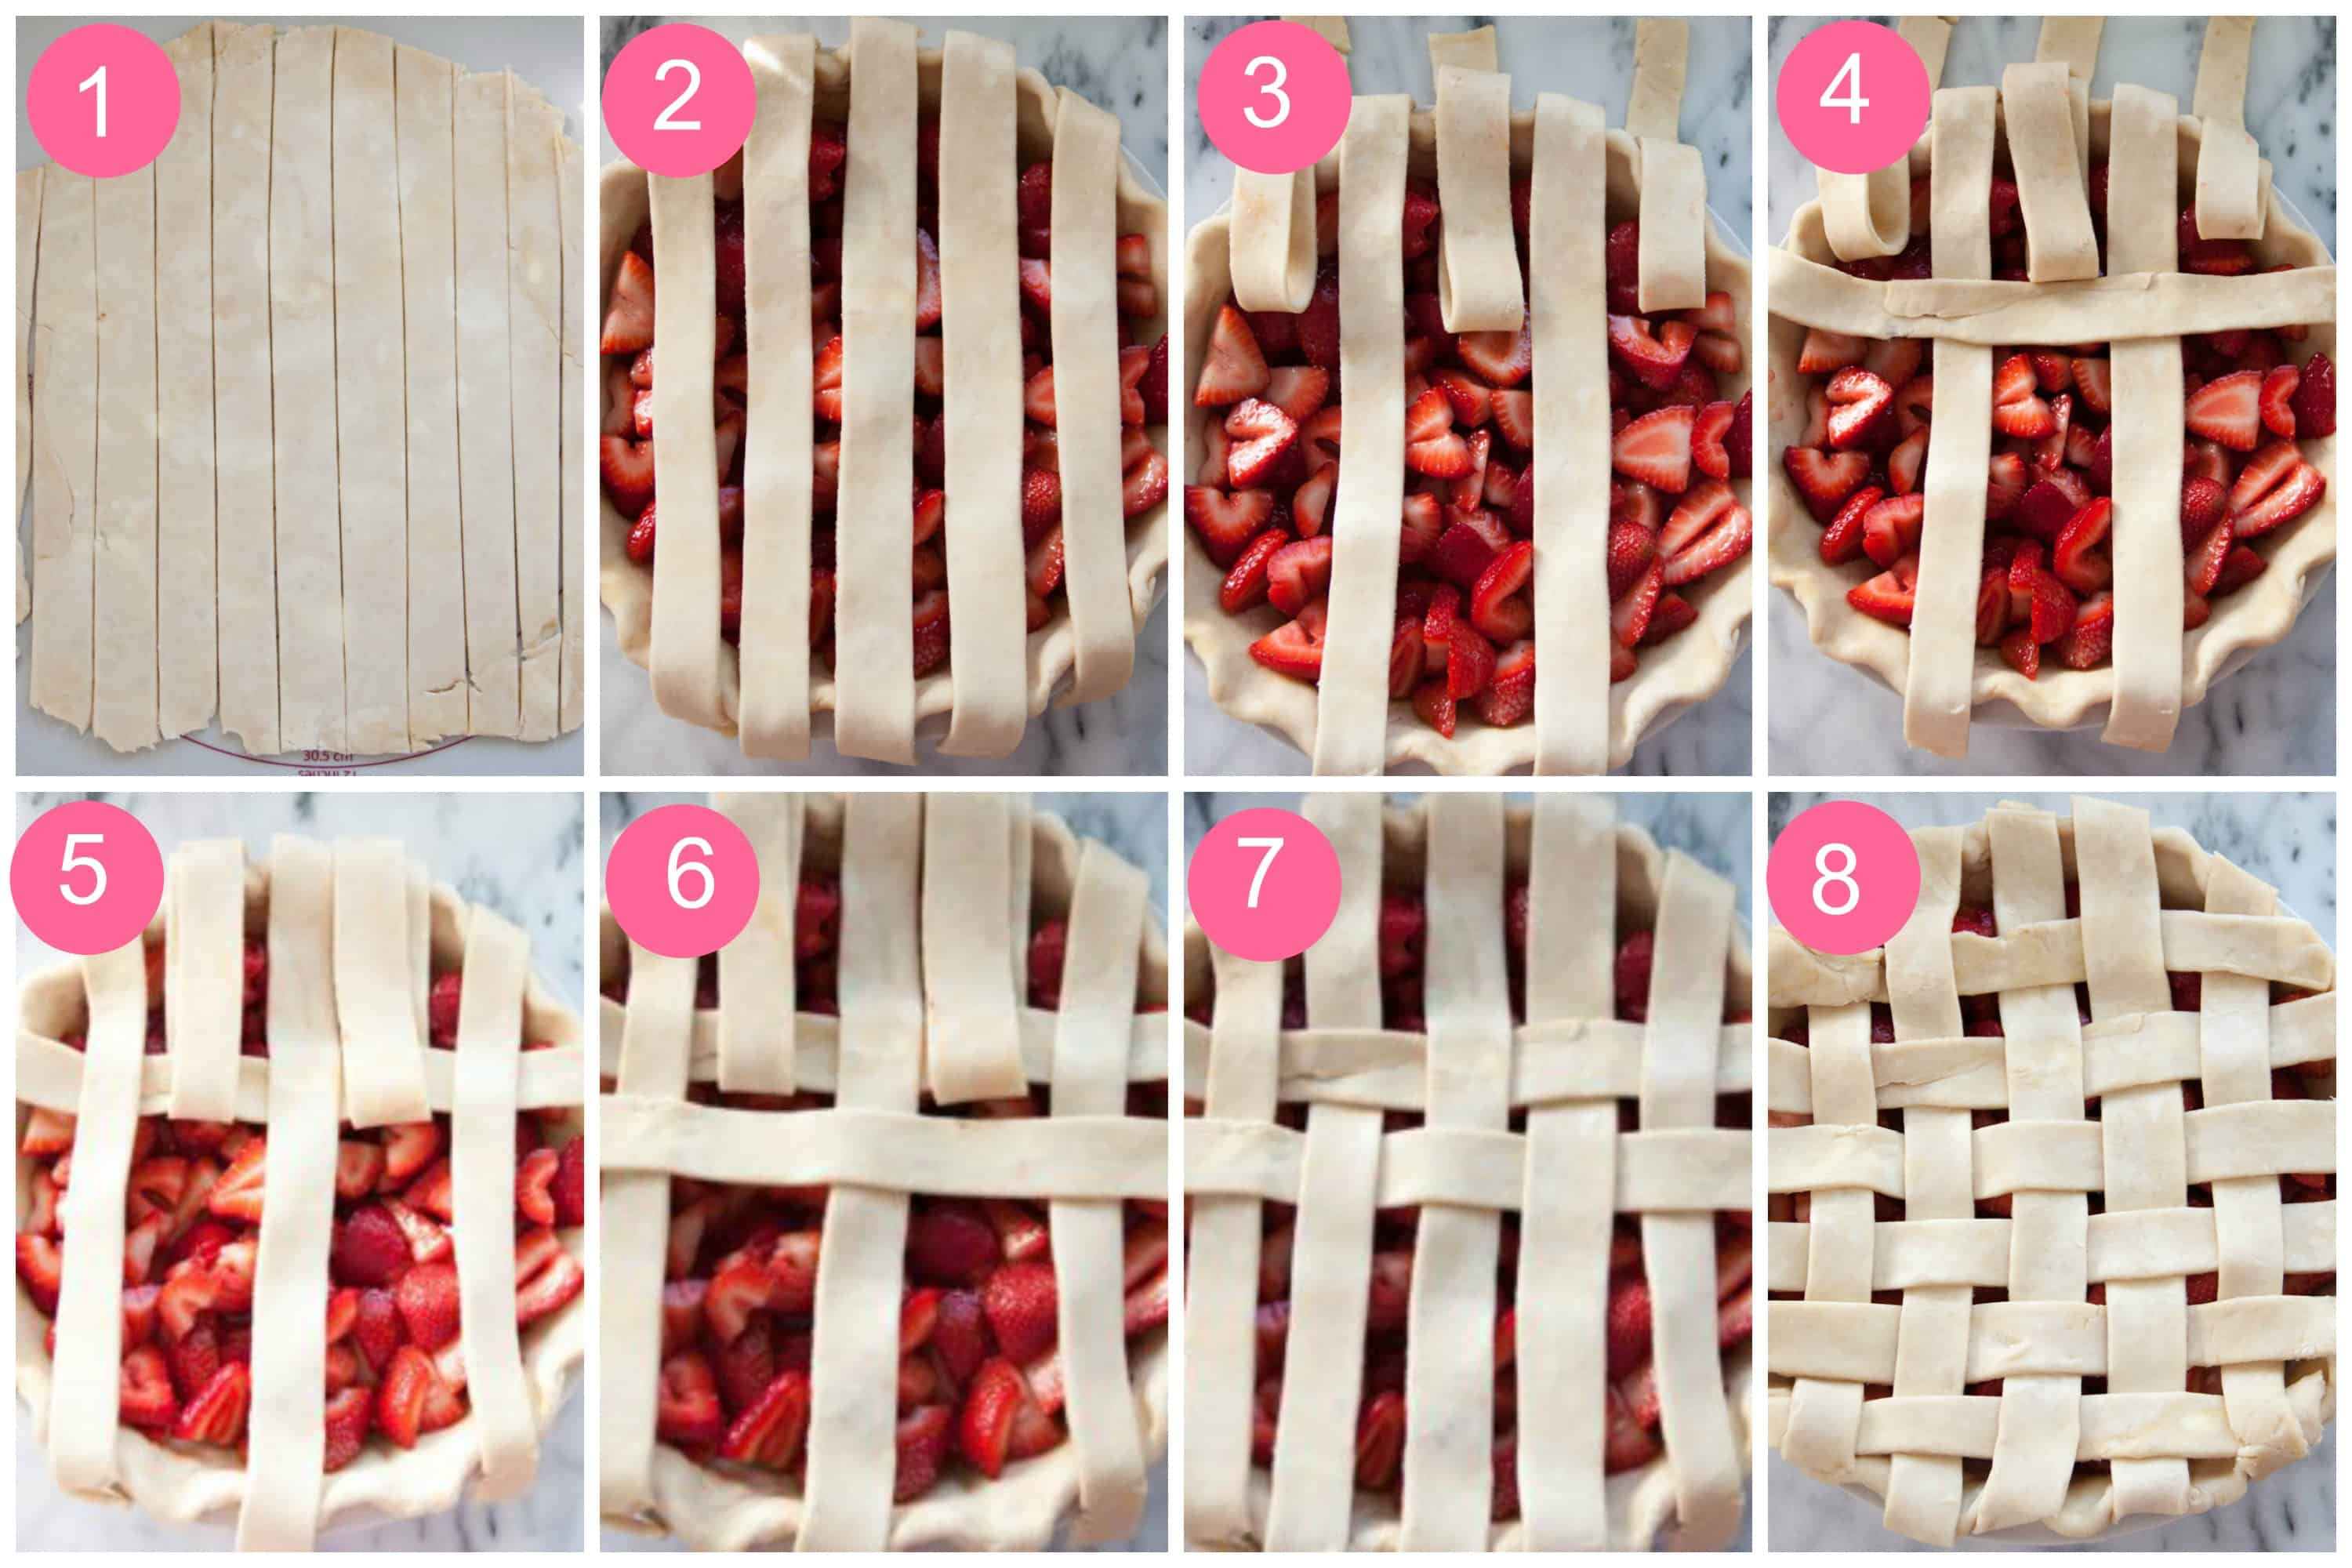 lattice crust step by step collage